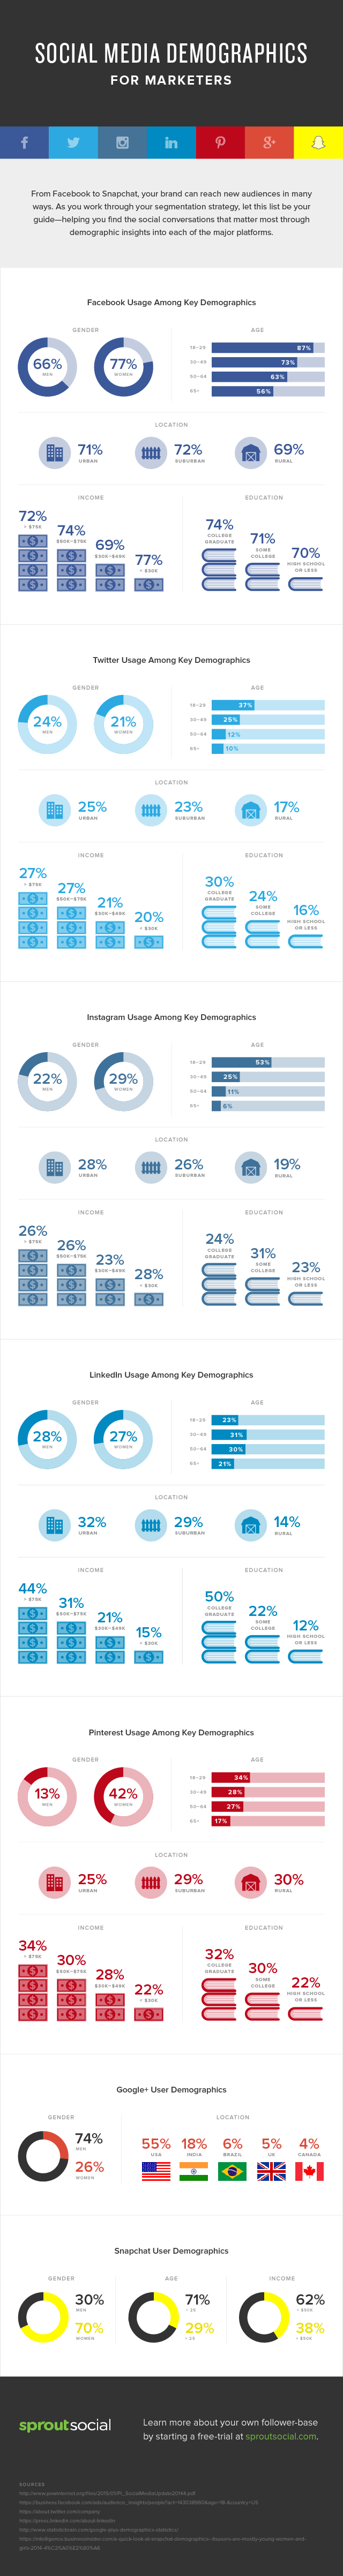 demographics-on-social-media-in-2015